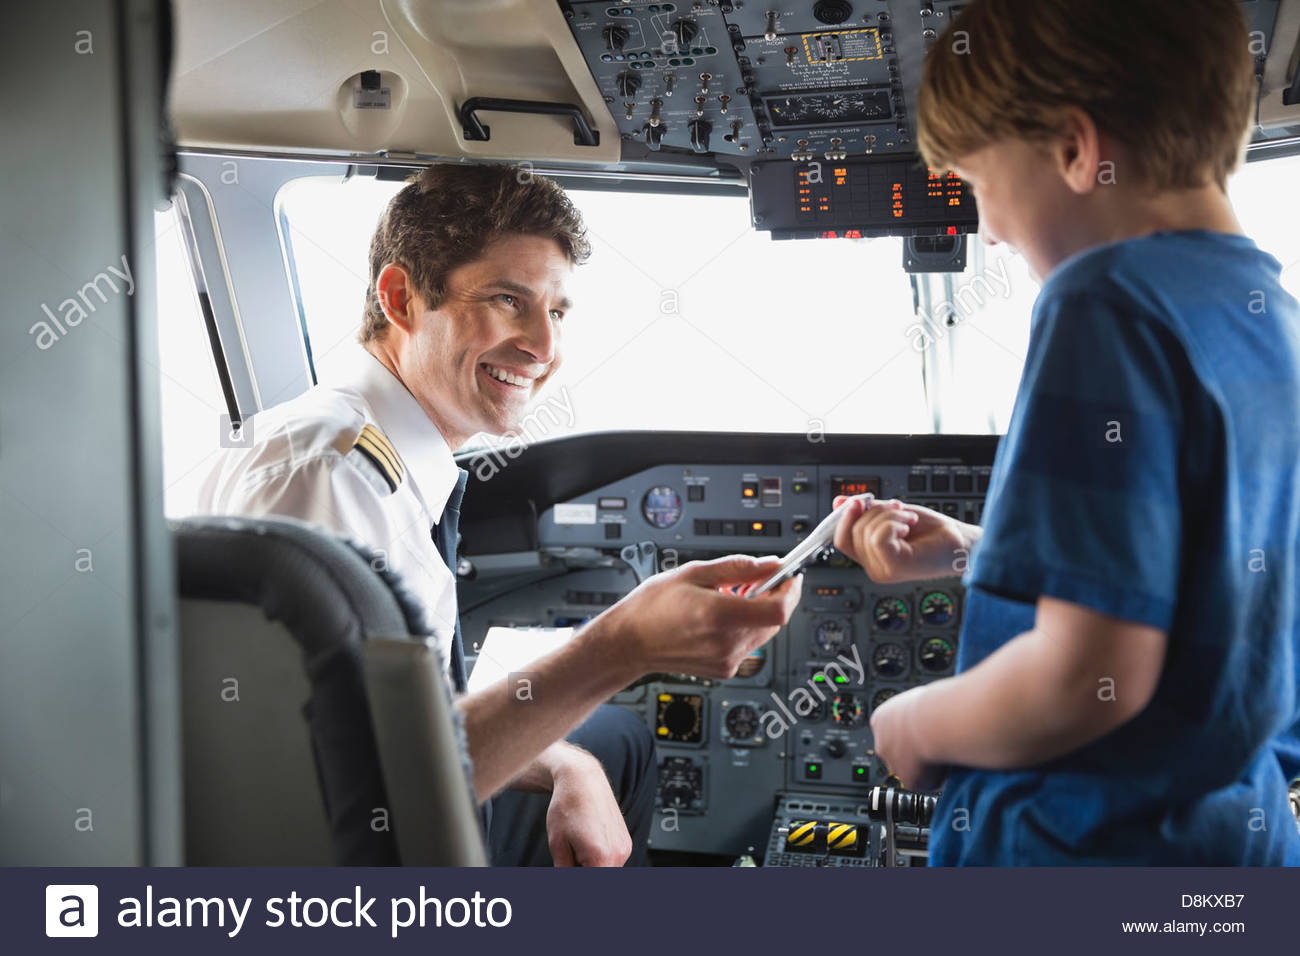 Male pilot giving toy plane to boy in airplane cockpit - Stock Image